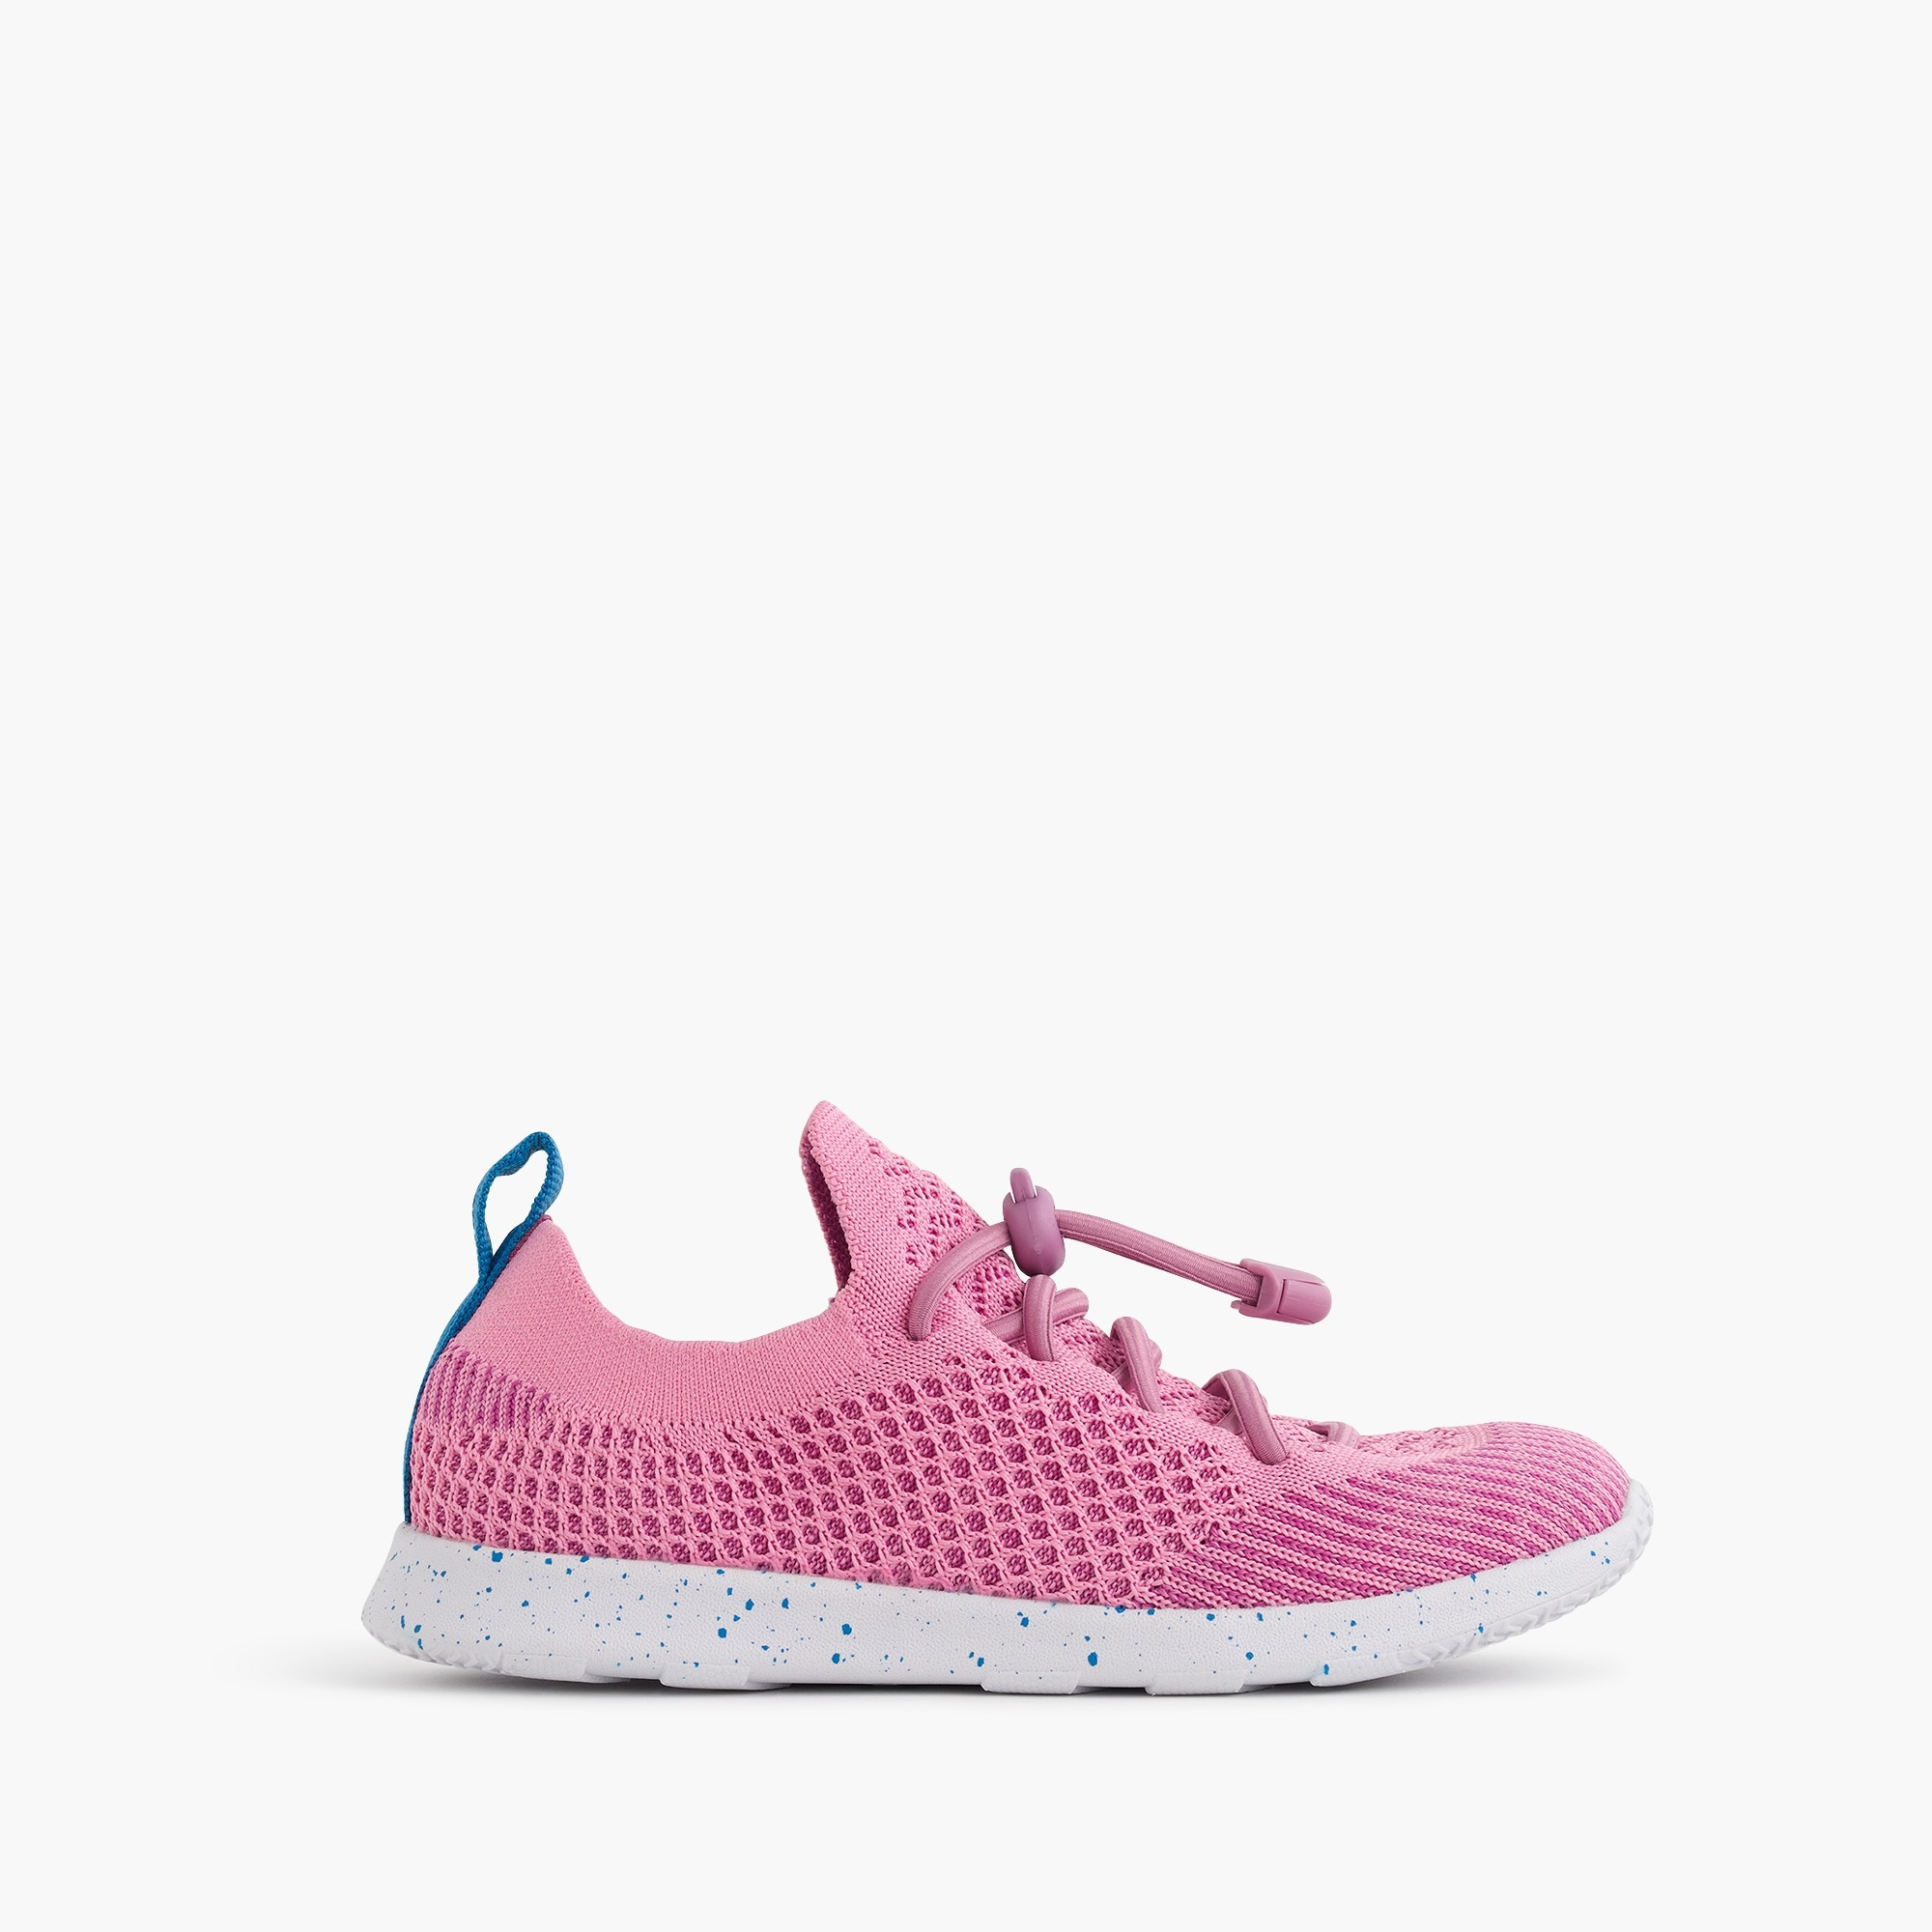 Image 1 for Girls' Native™ for crewcuts AP mercury liteknit sneakers in smaller sizes